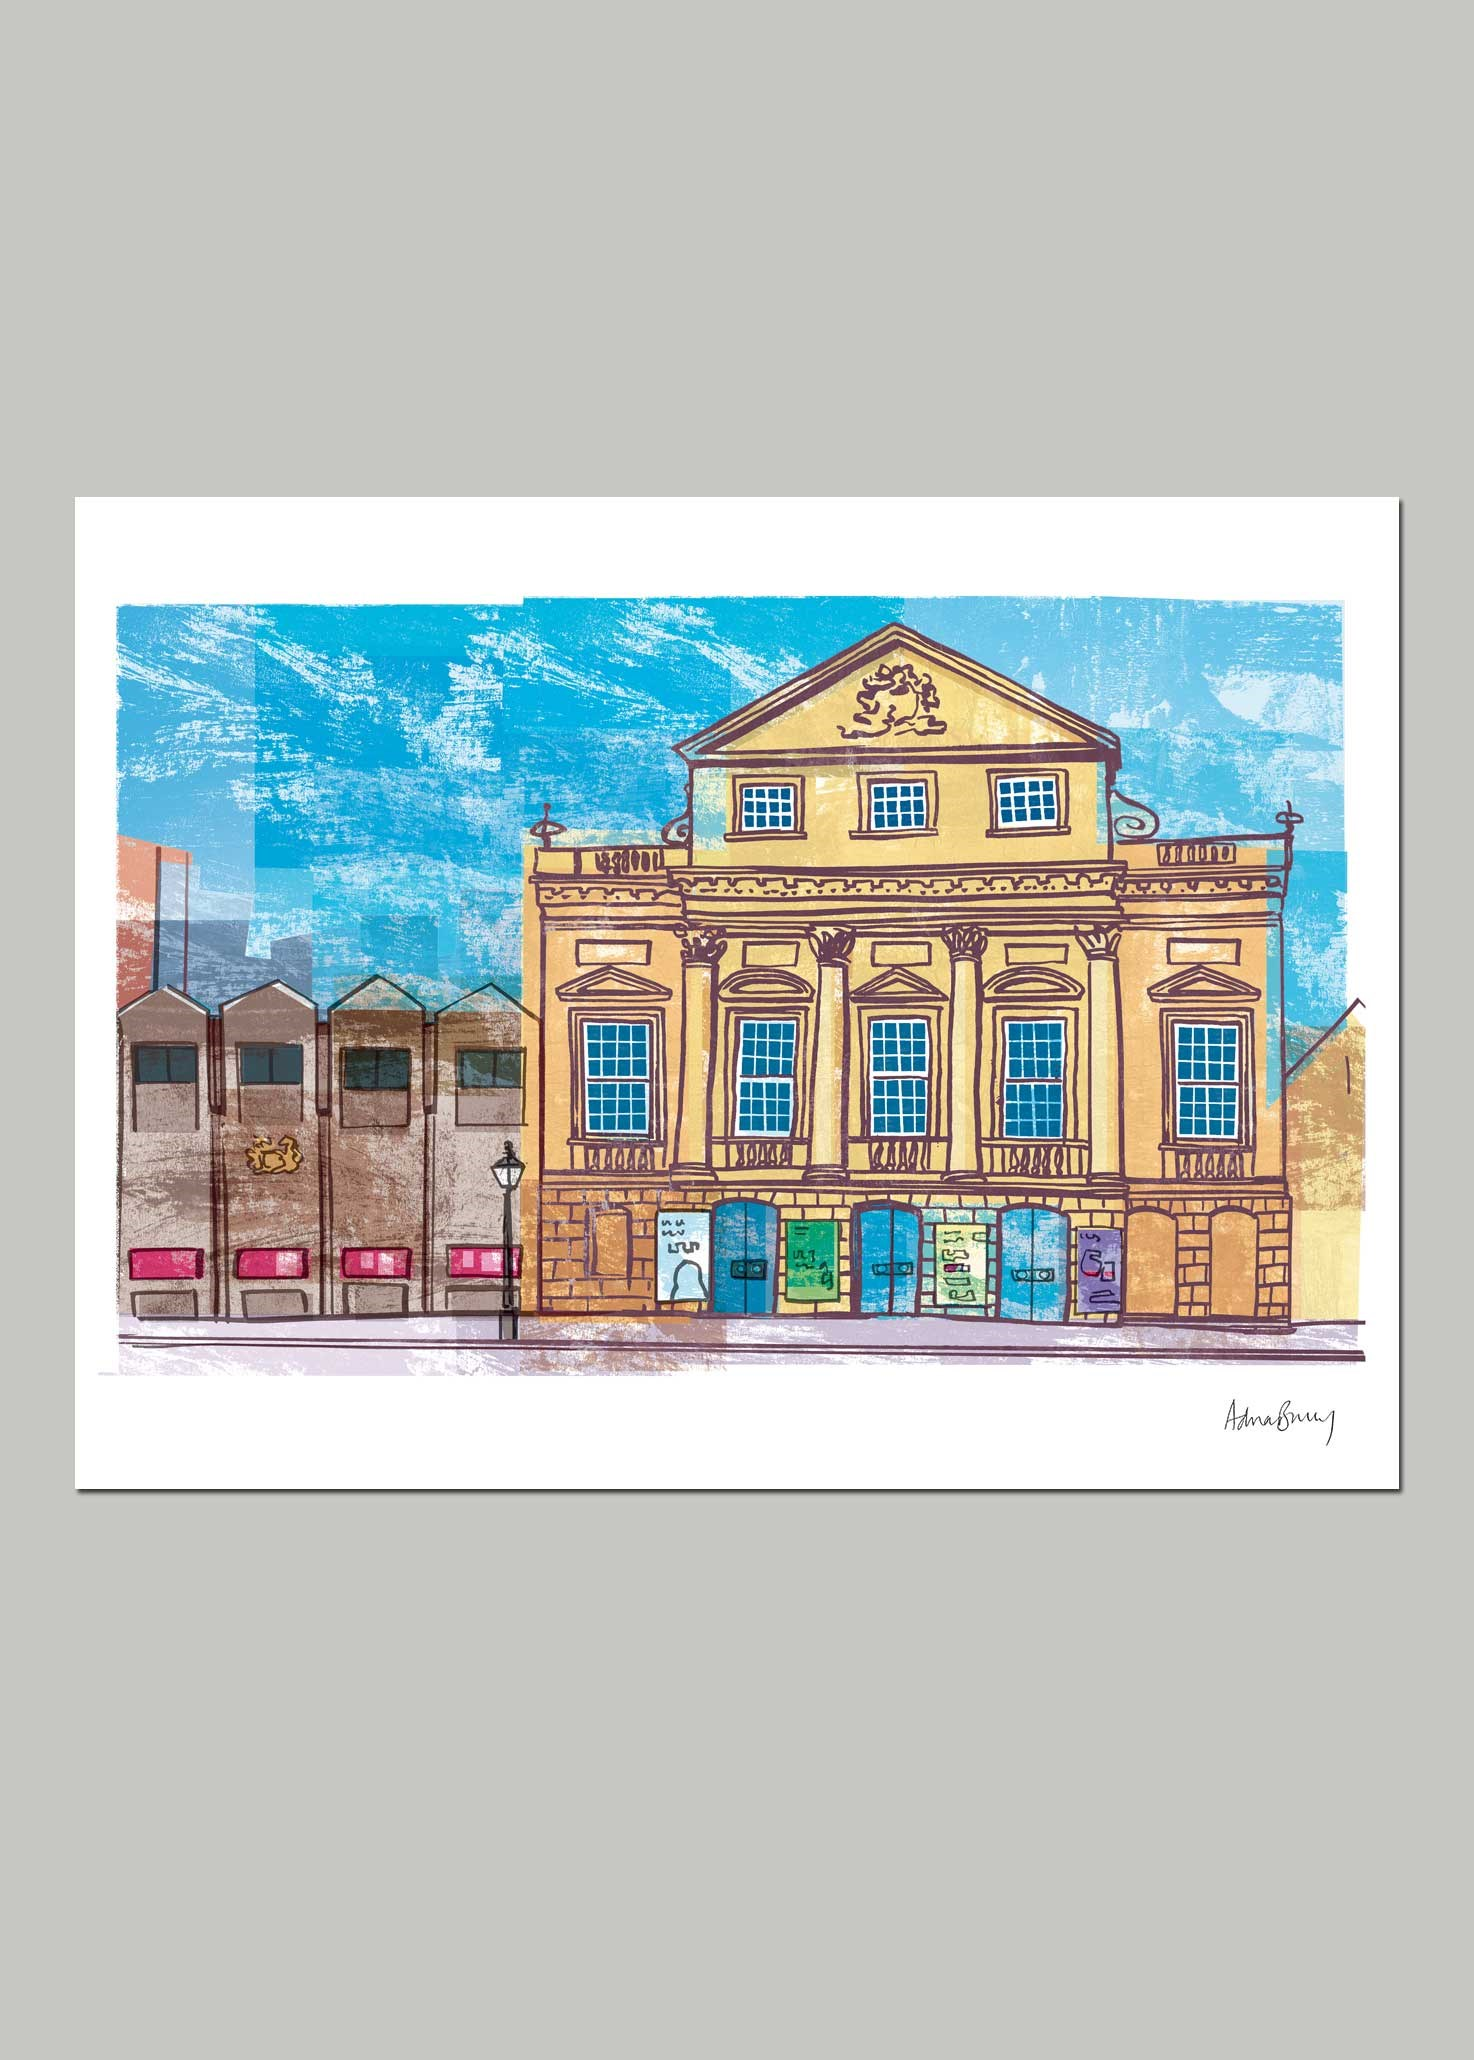 Bristol Old Vic by Adrian Barclay